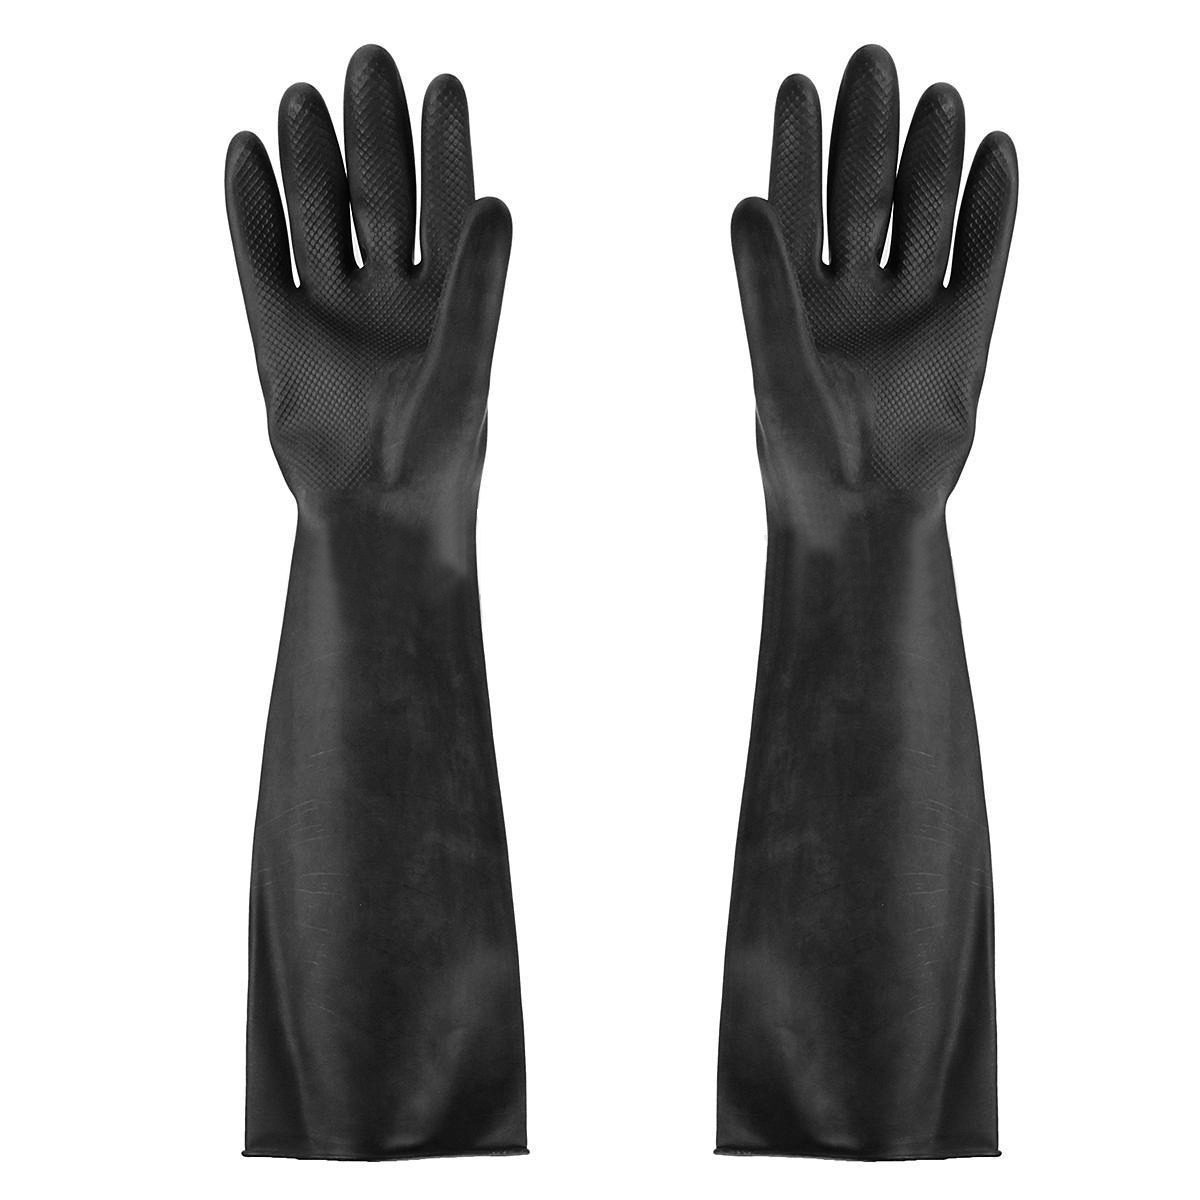 Black Long Protective Garden Industry Rubber Gloves Elastic Anti Acid Alkali Rubber Work Comfortable Chemical Gloves 60cm Mayitr